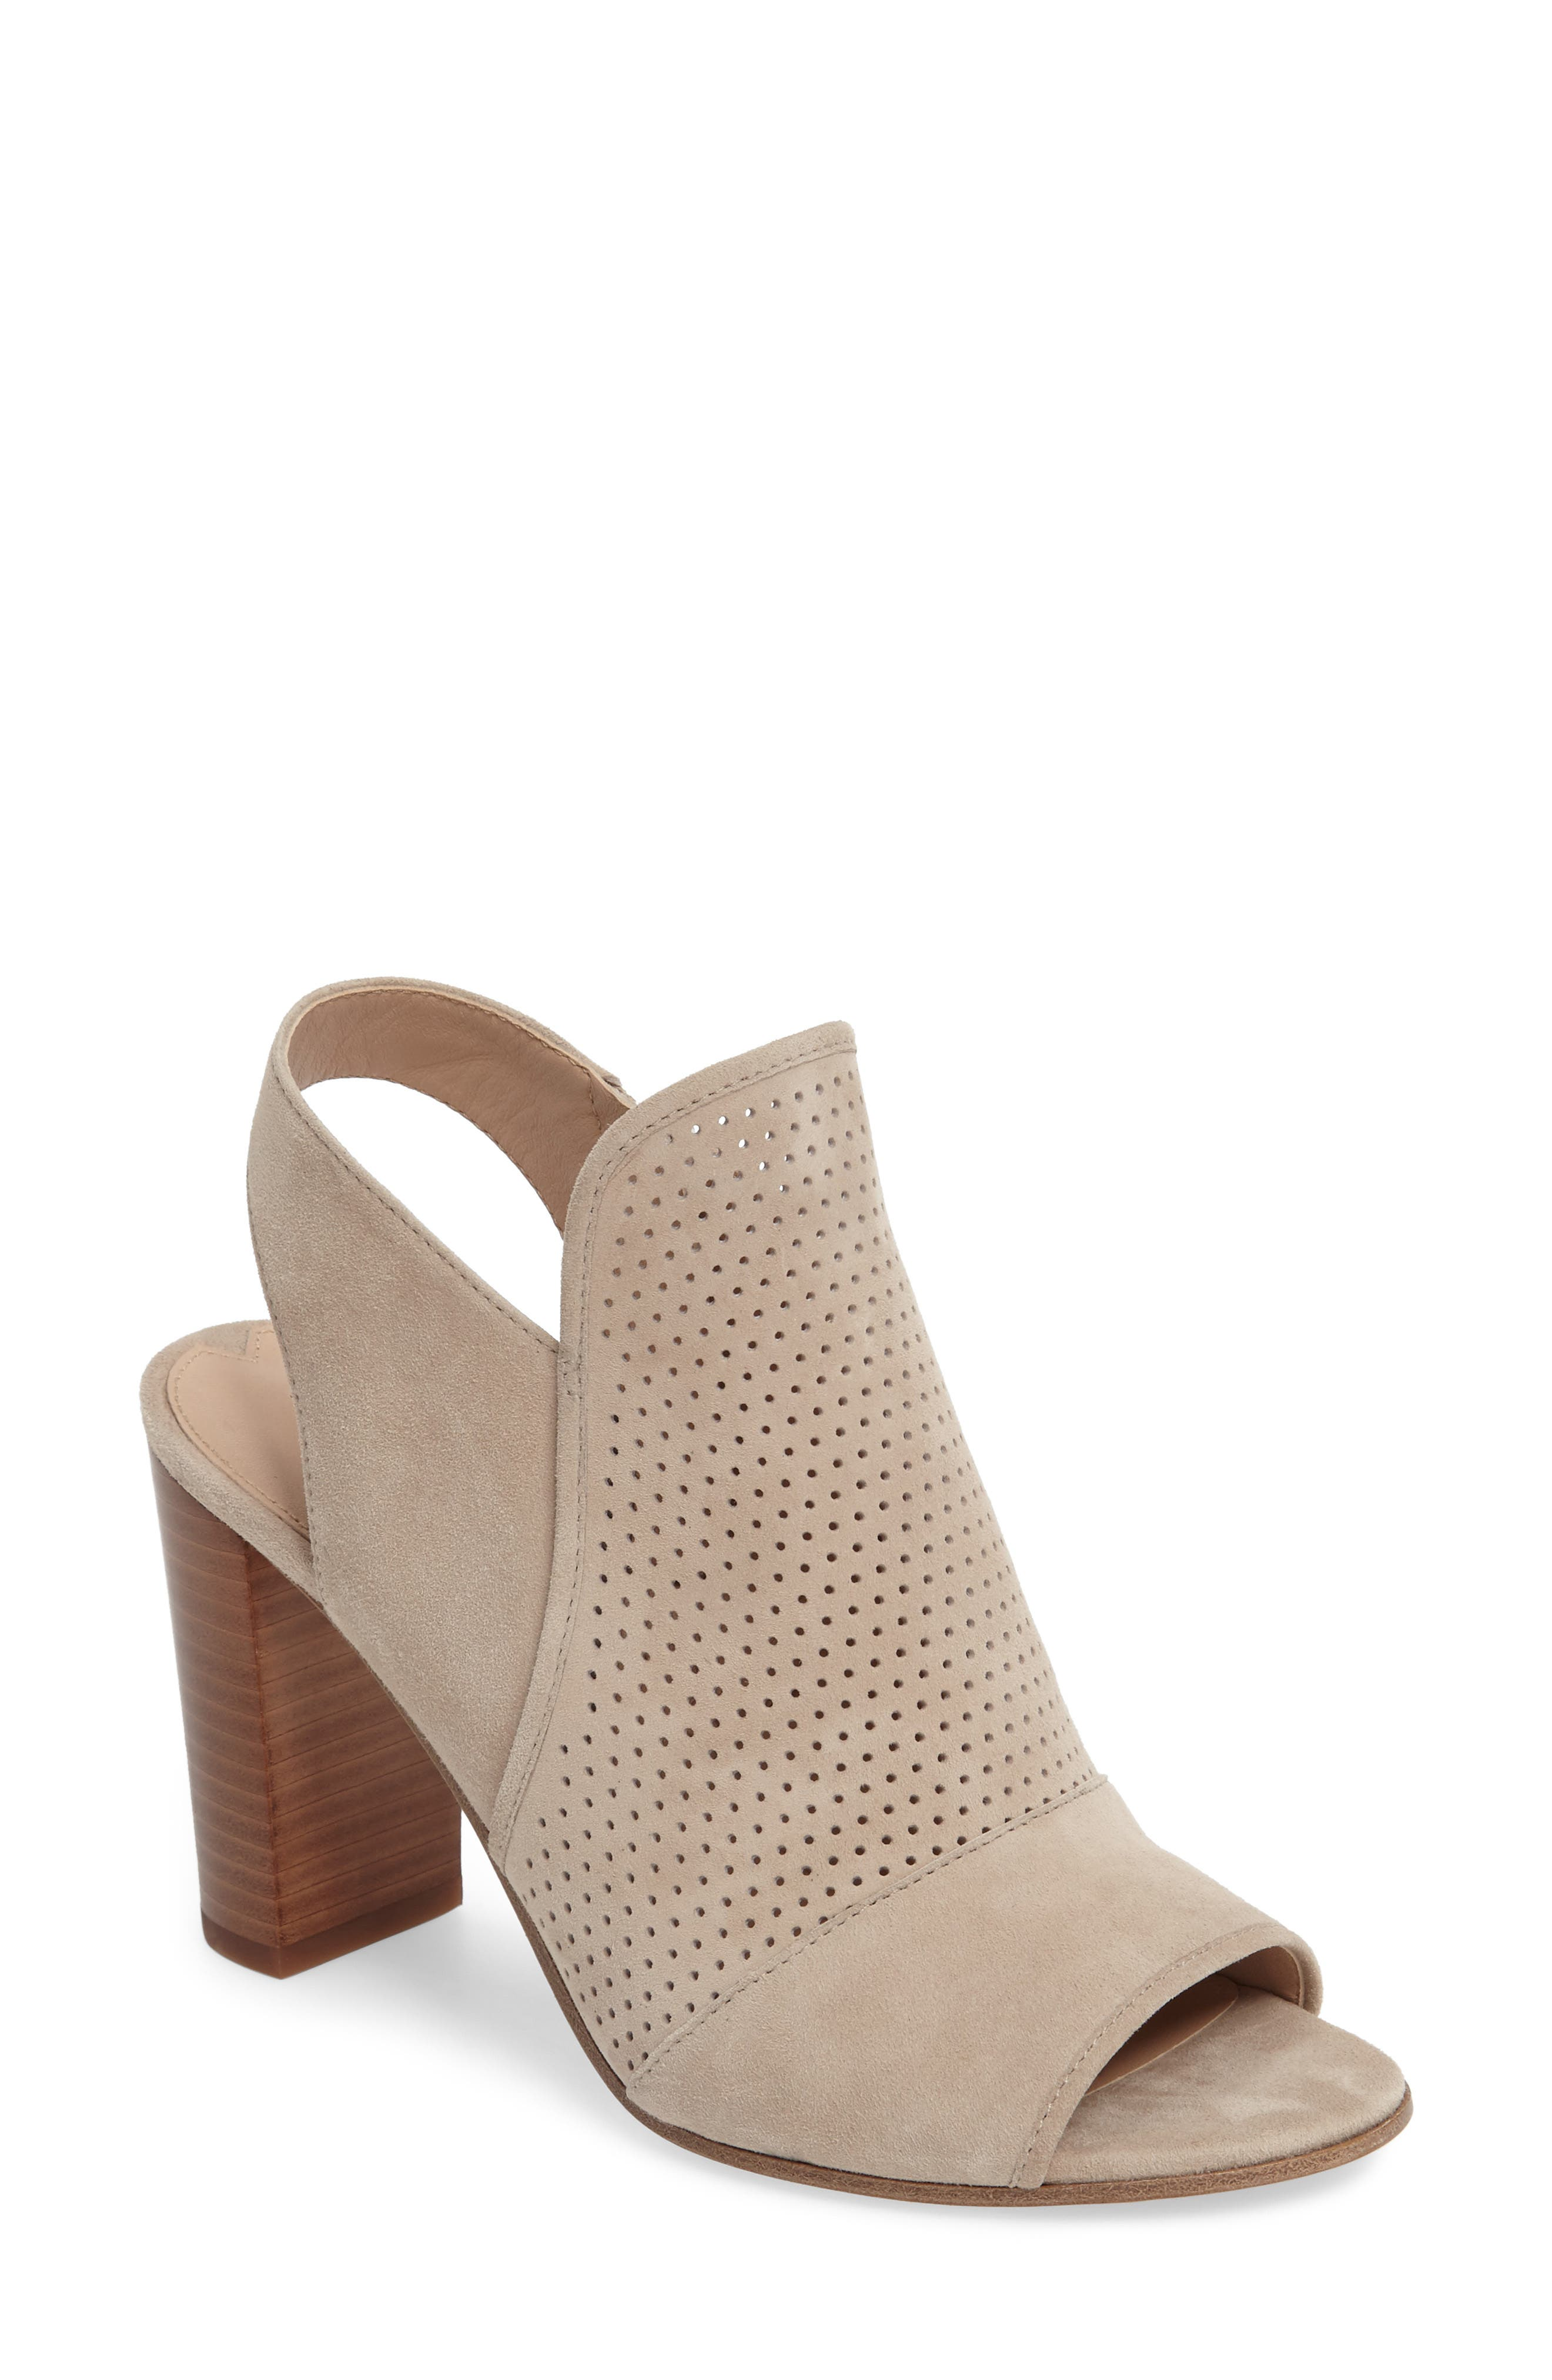 Main Image - Via Spiga Gaze Block Heel Sandal (Women)